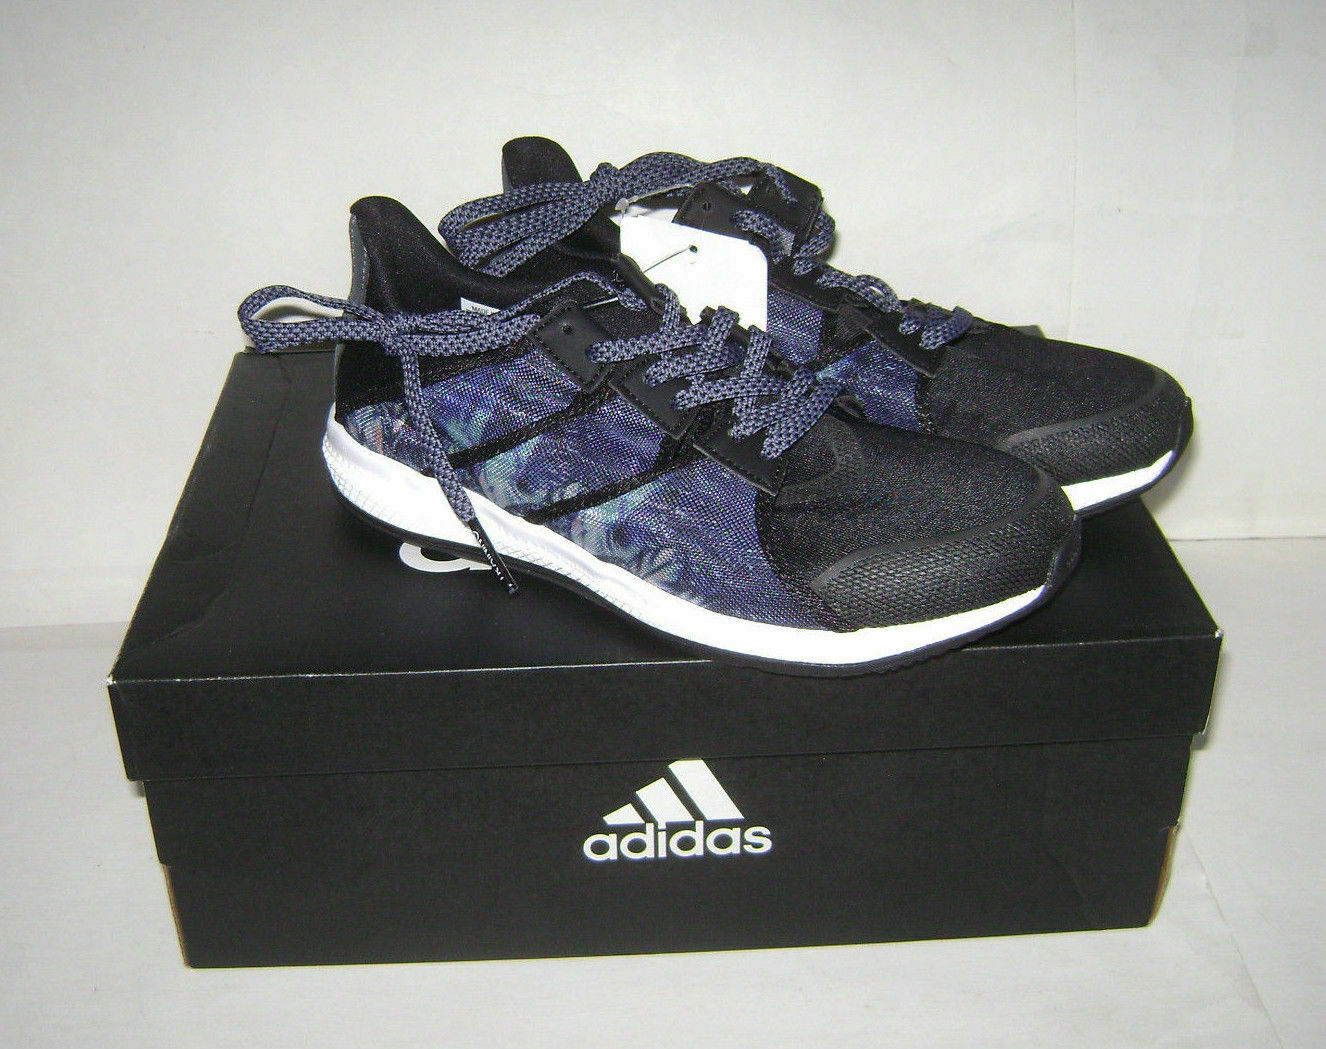 Adidas Womens Gymbreaker Trainer Black/blue Mesh Shoes New!